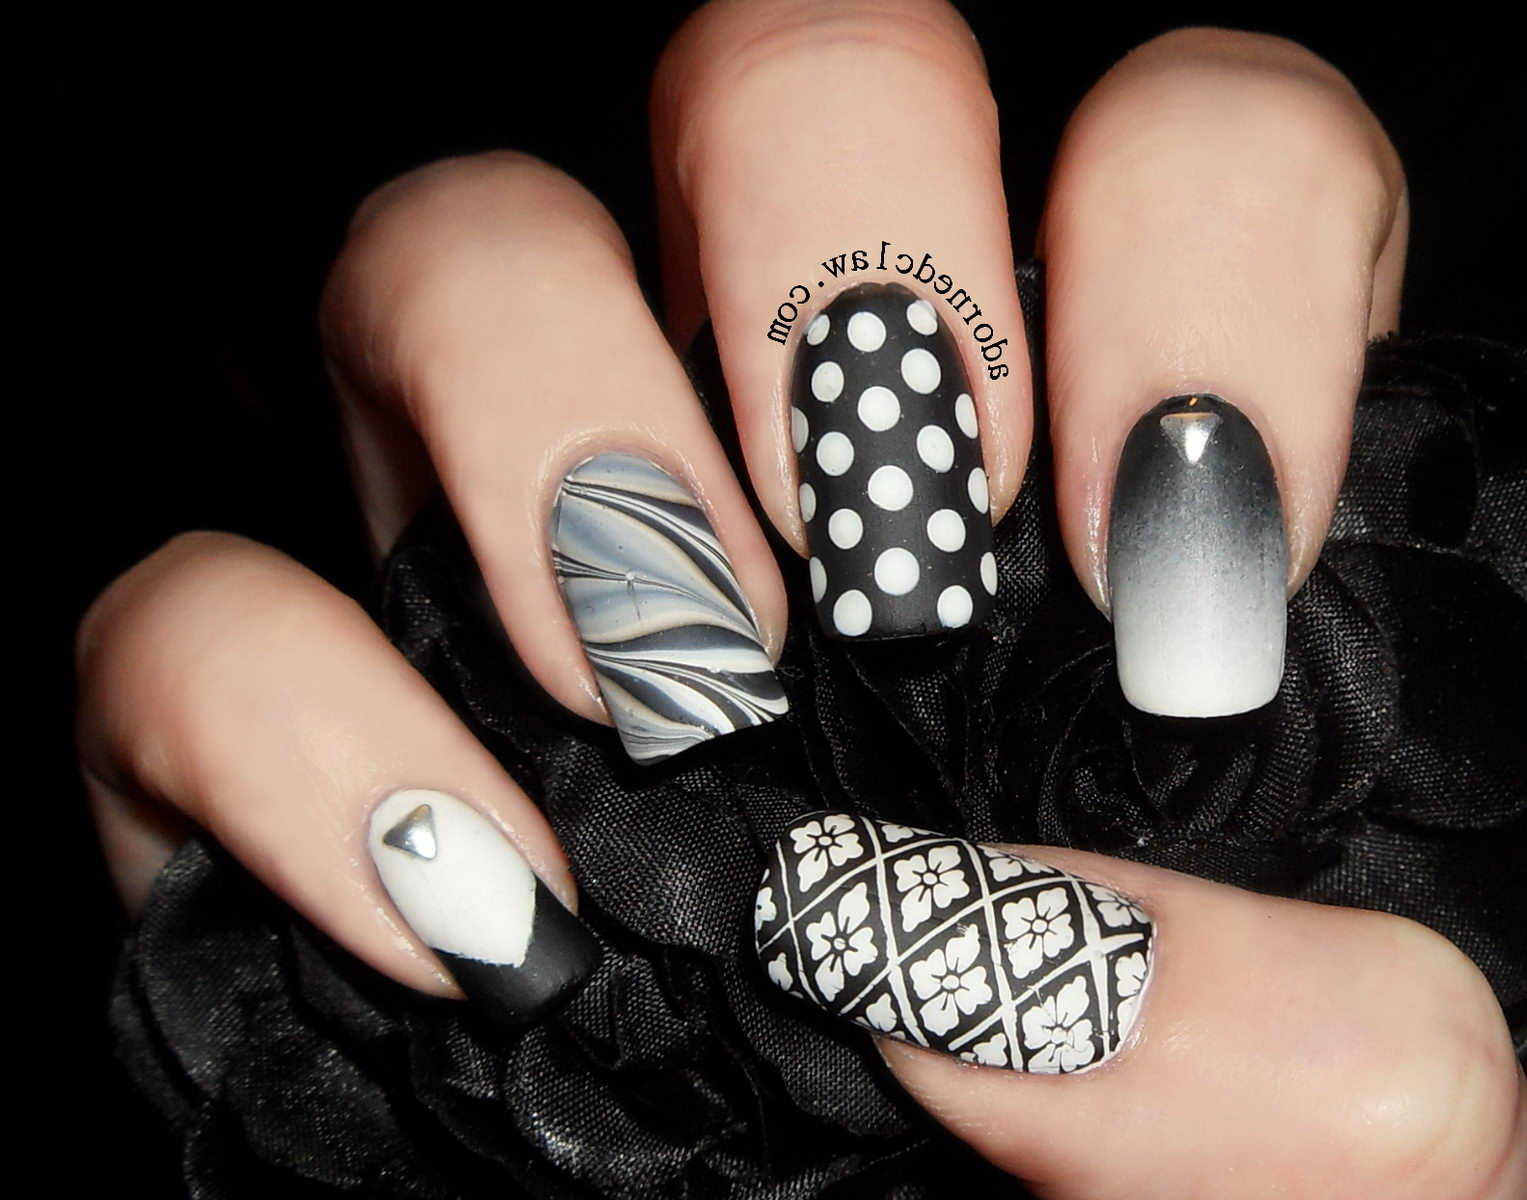 nails with mix of forms and shapes